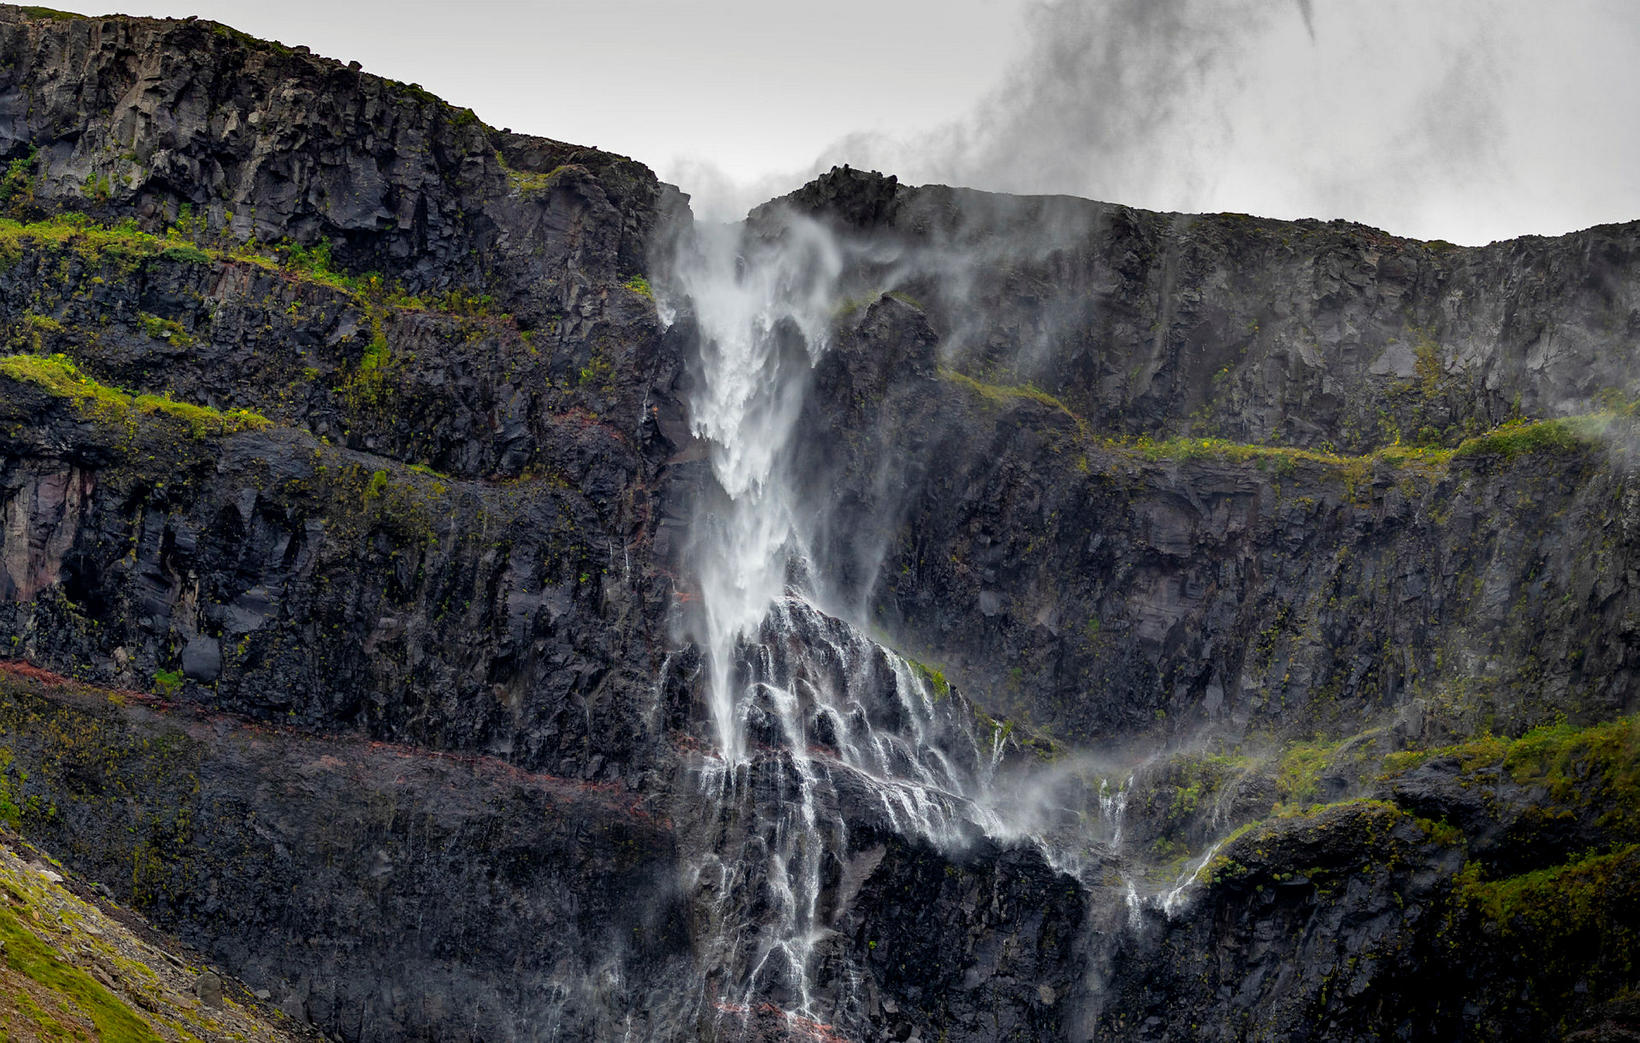 A waterfall by Rauðisandur, on a windy day.